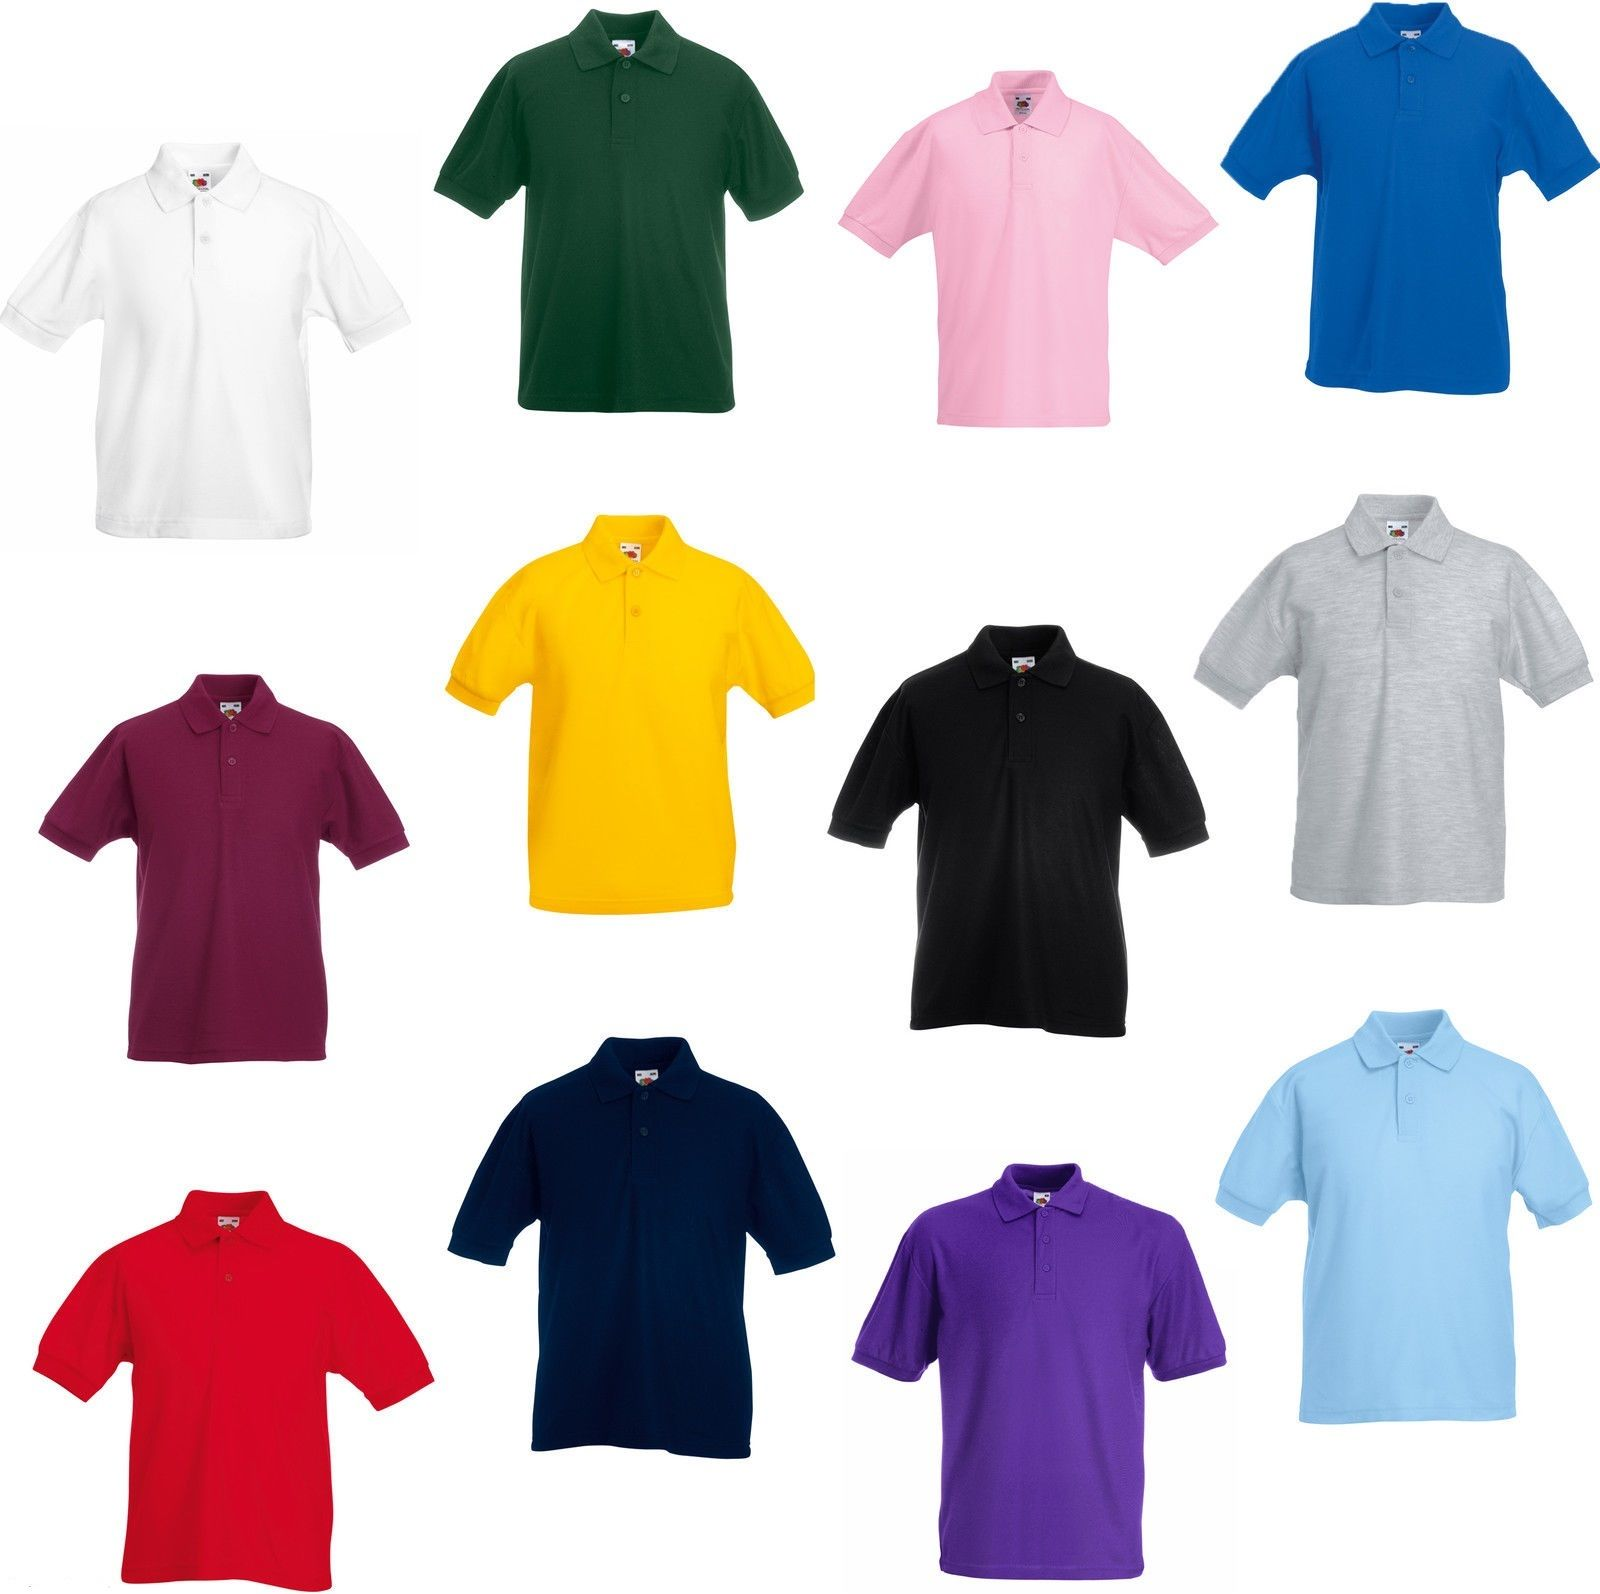 ca8d9f76d593 Boys Girls Kids Unisex Plain Summer Polo T Shirt 3-14 Years Daily School  Uniform